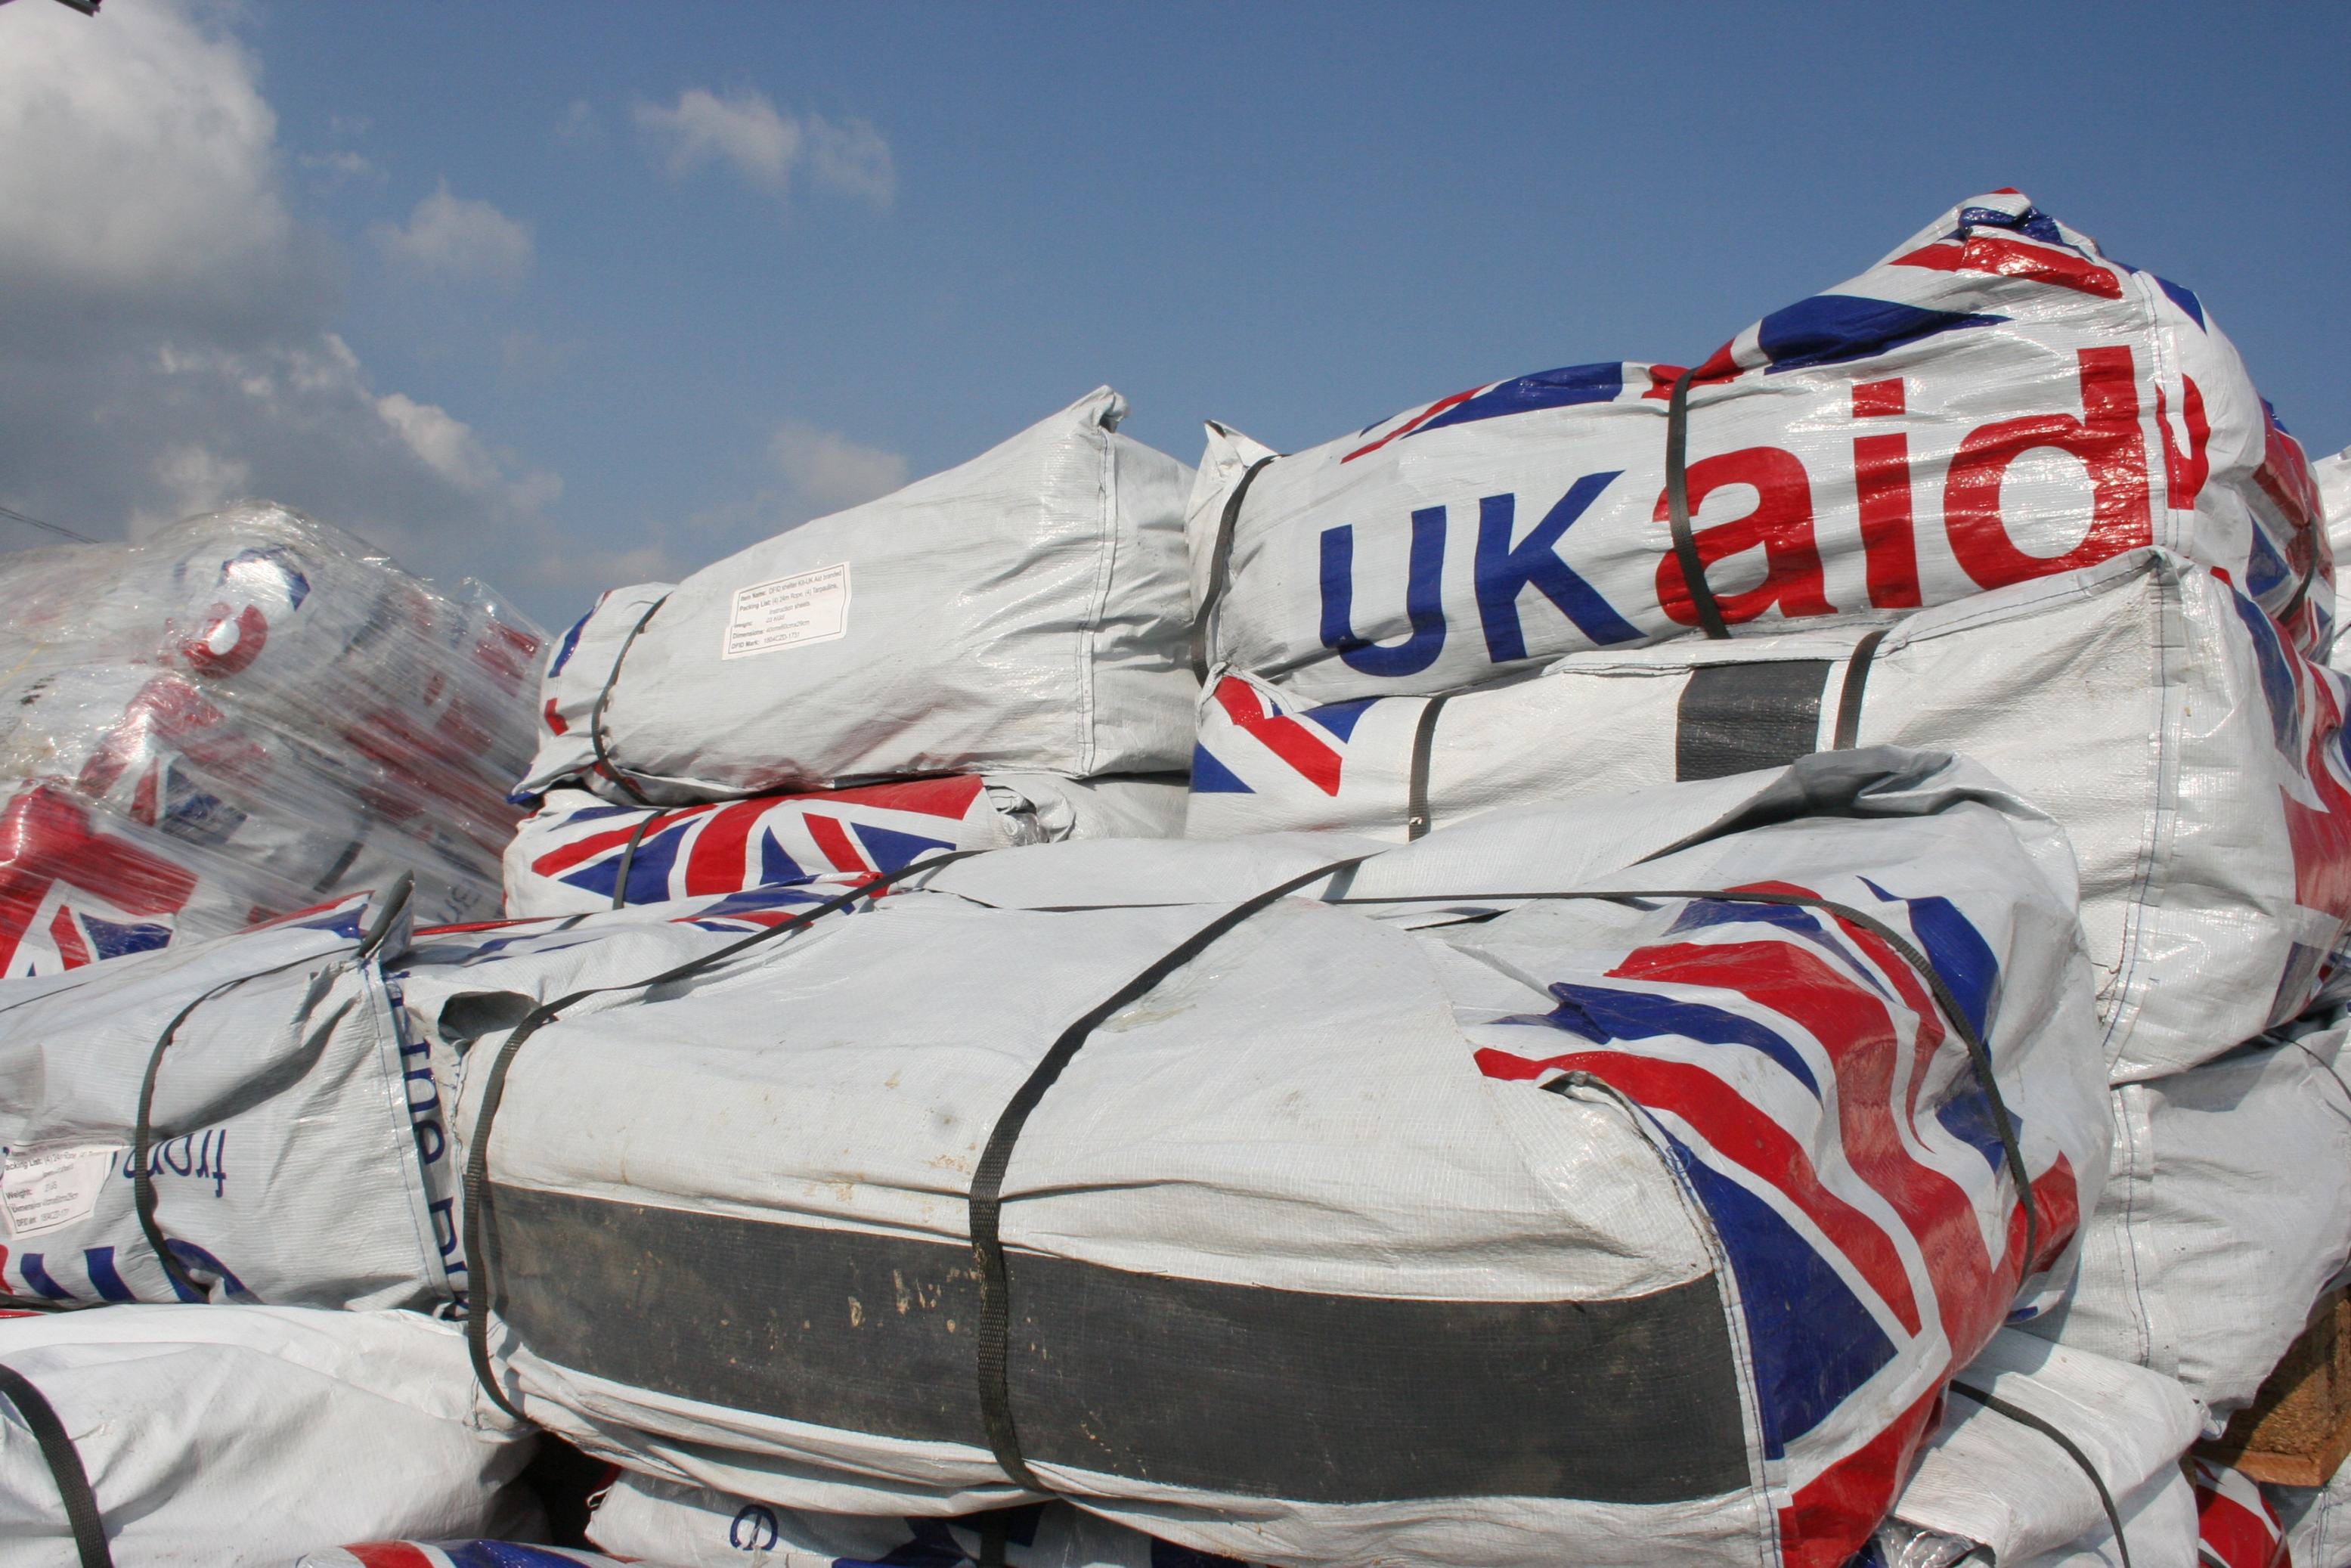 UKAid at the Humanitarian Forwarding Area in Kathmandu airport following a 7.8-magnitude earthquake that hit Nepal on 25 April 2015.